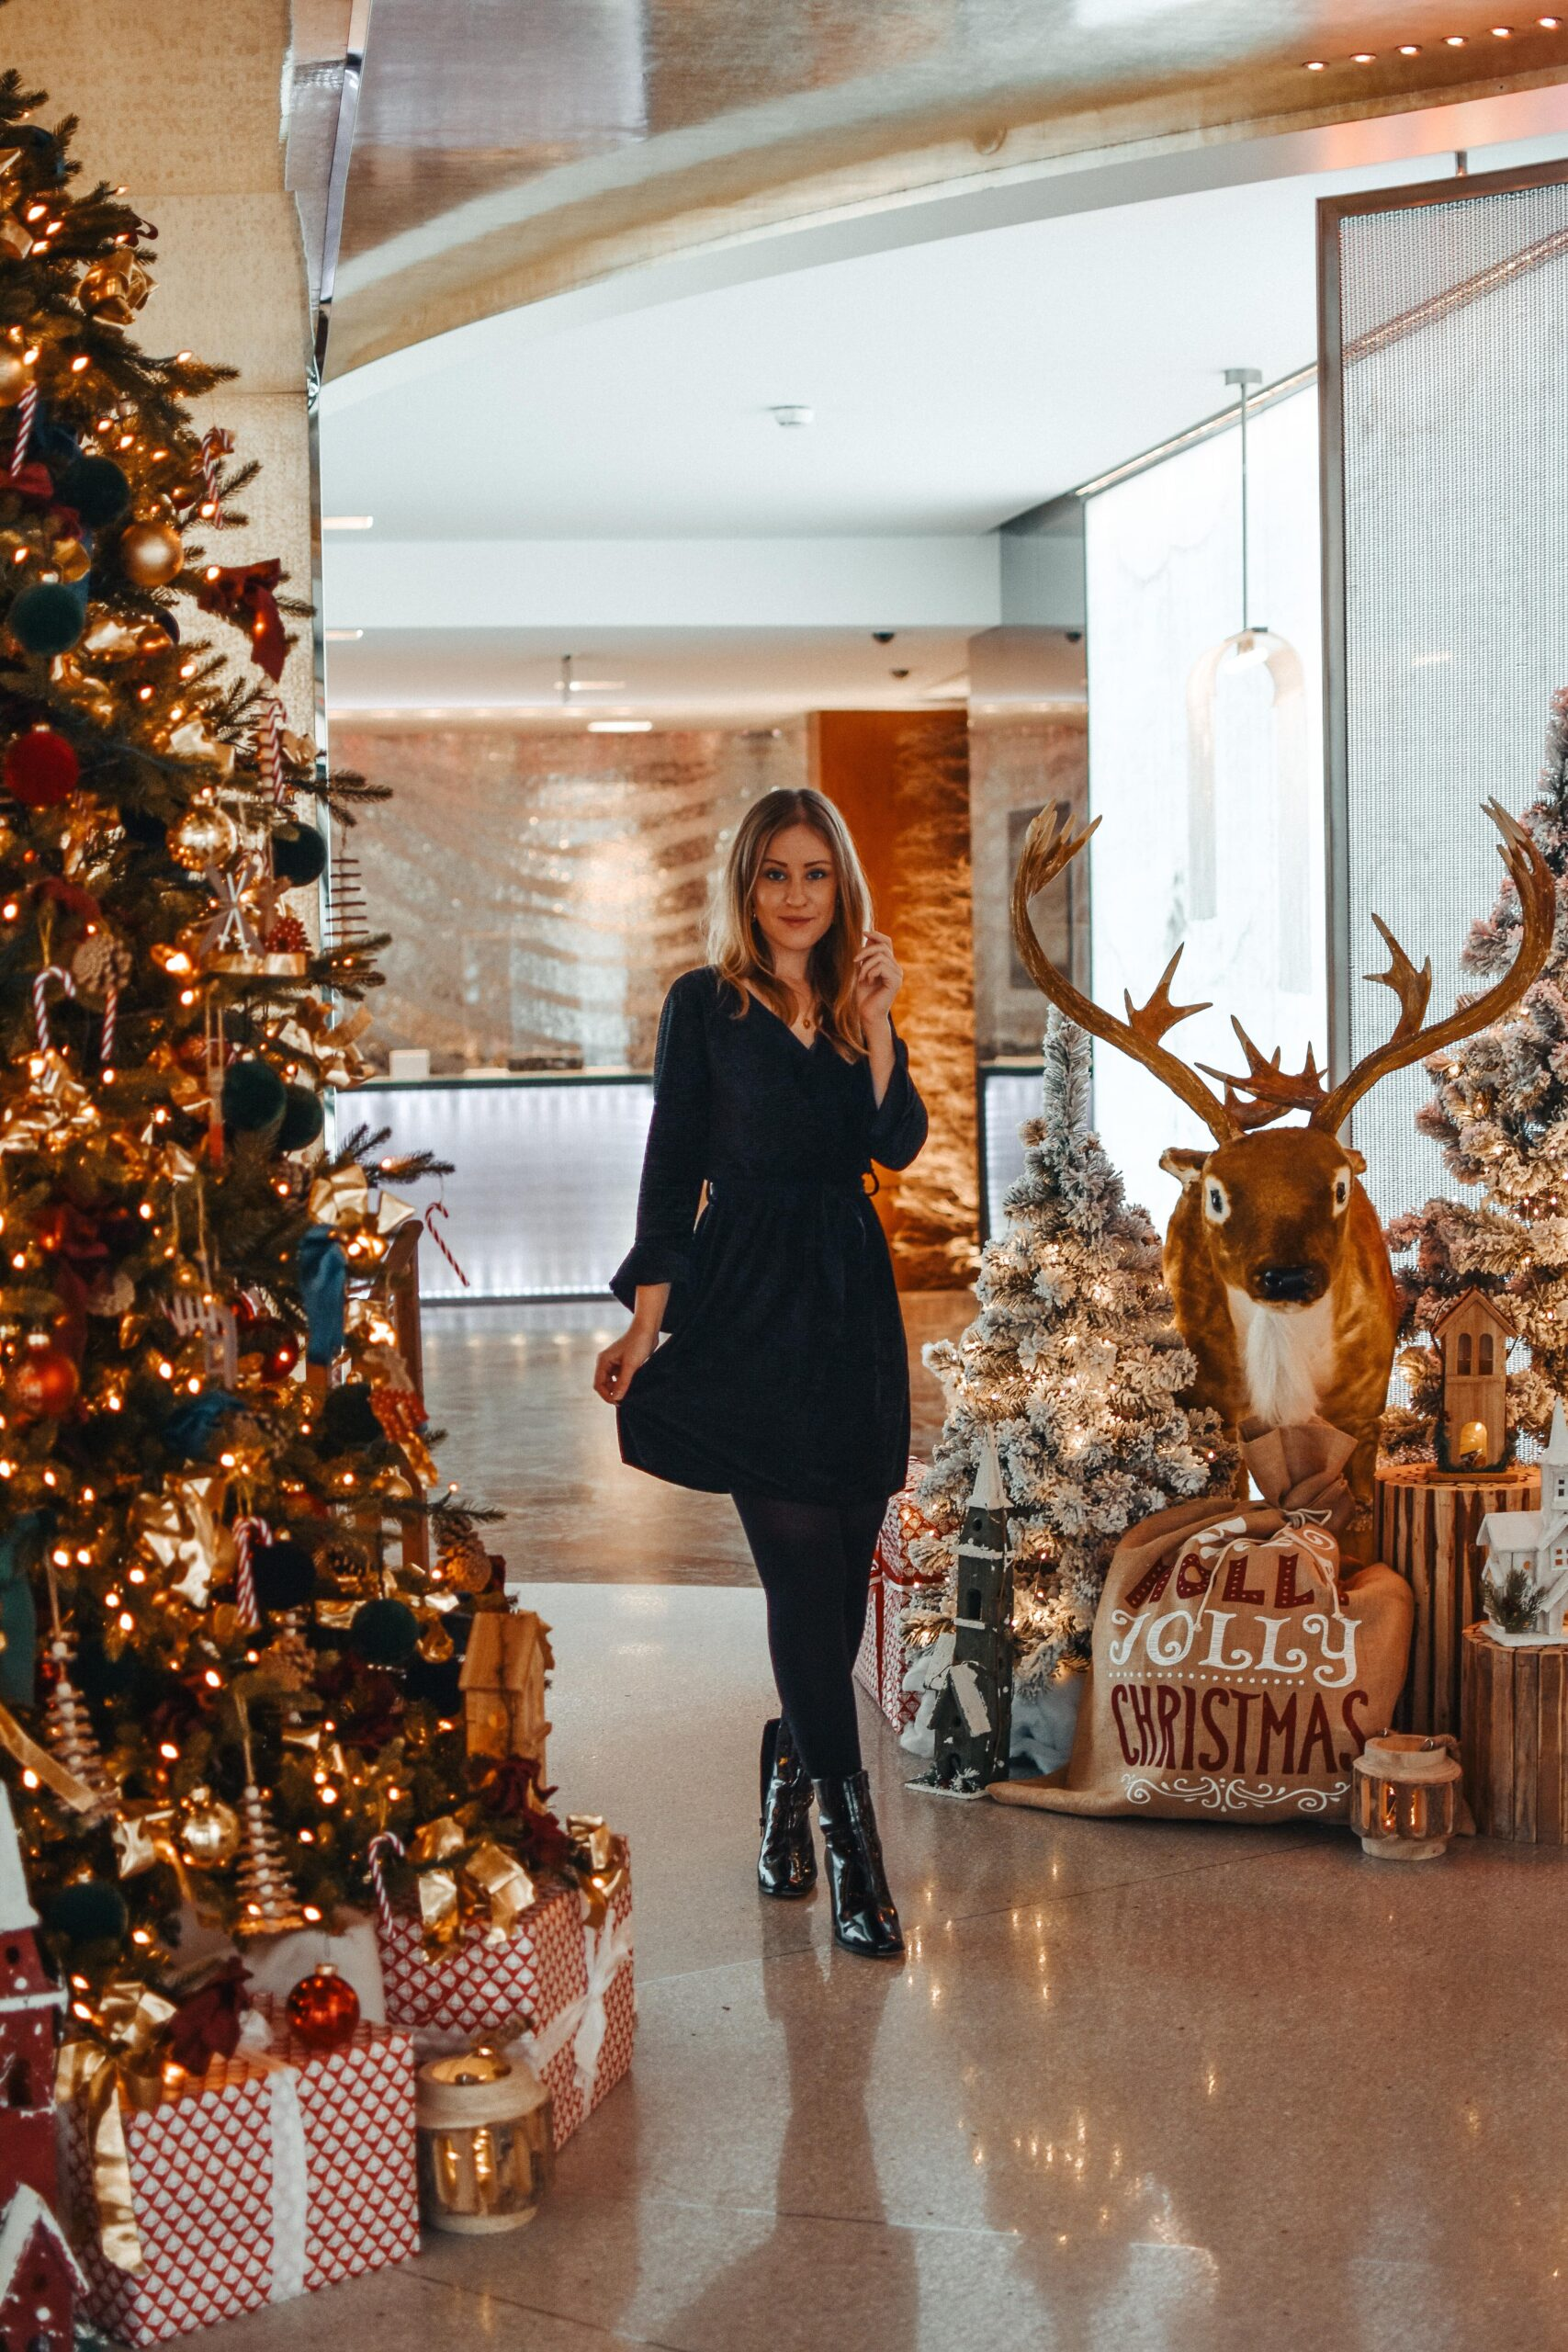 The Most Beautiful Beauty Christmas Gift Ideas The Chic Advocate